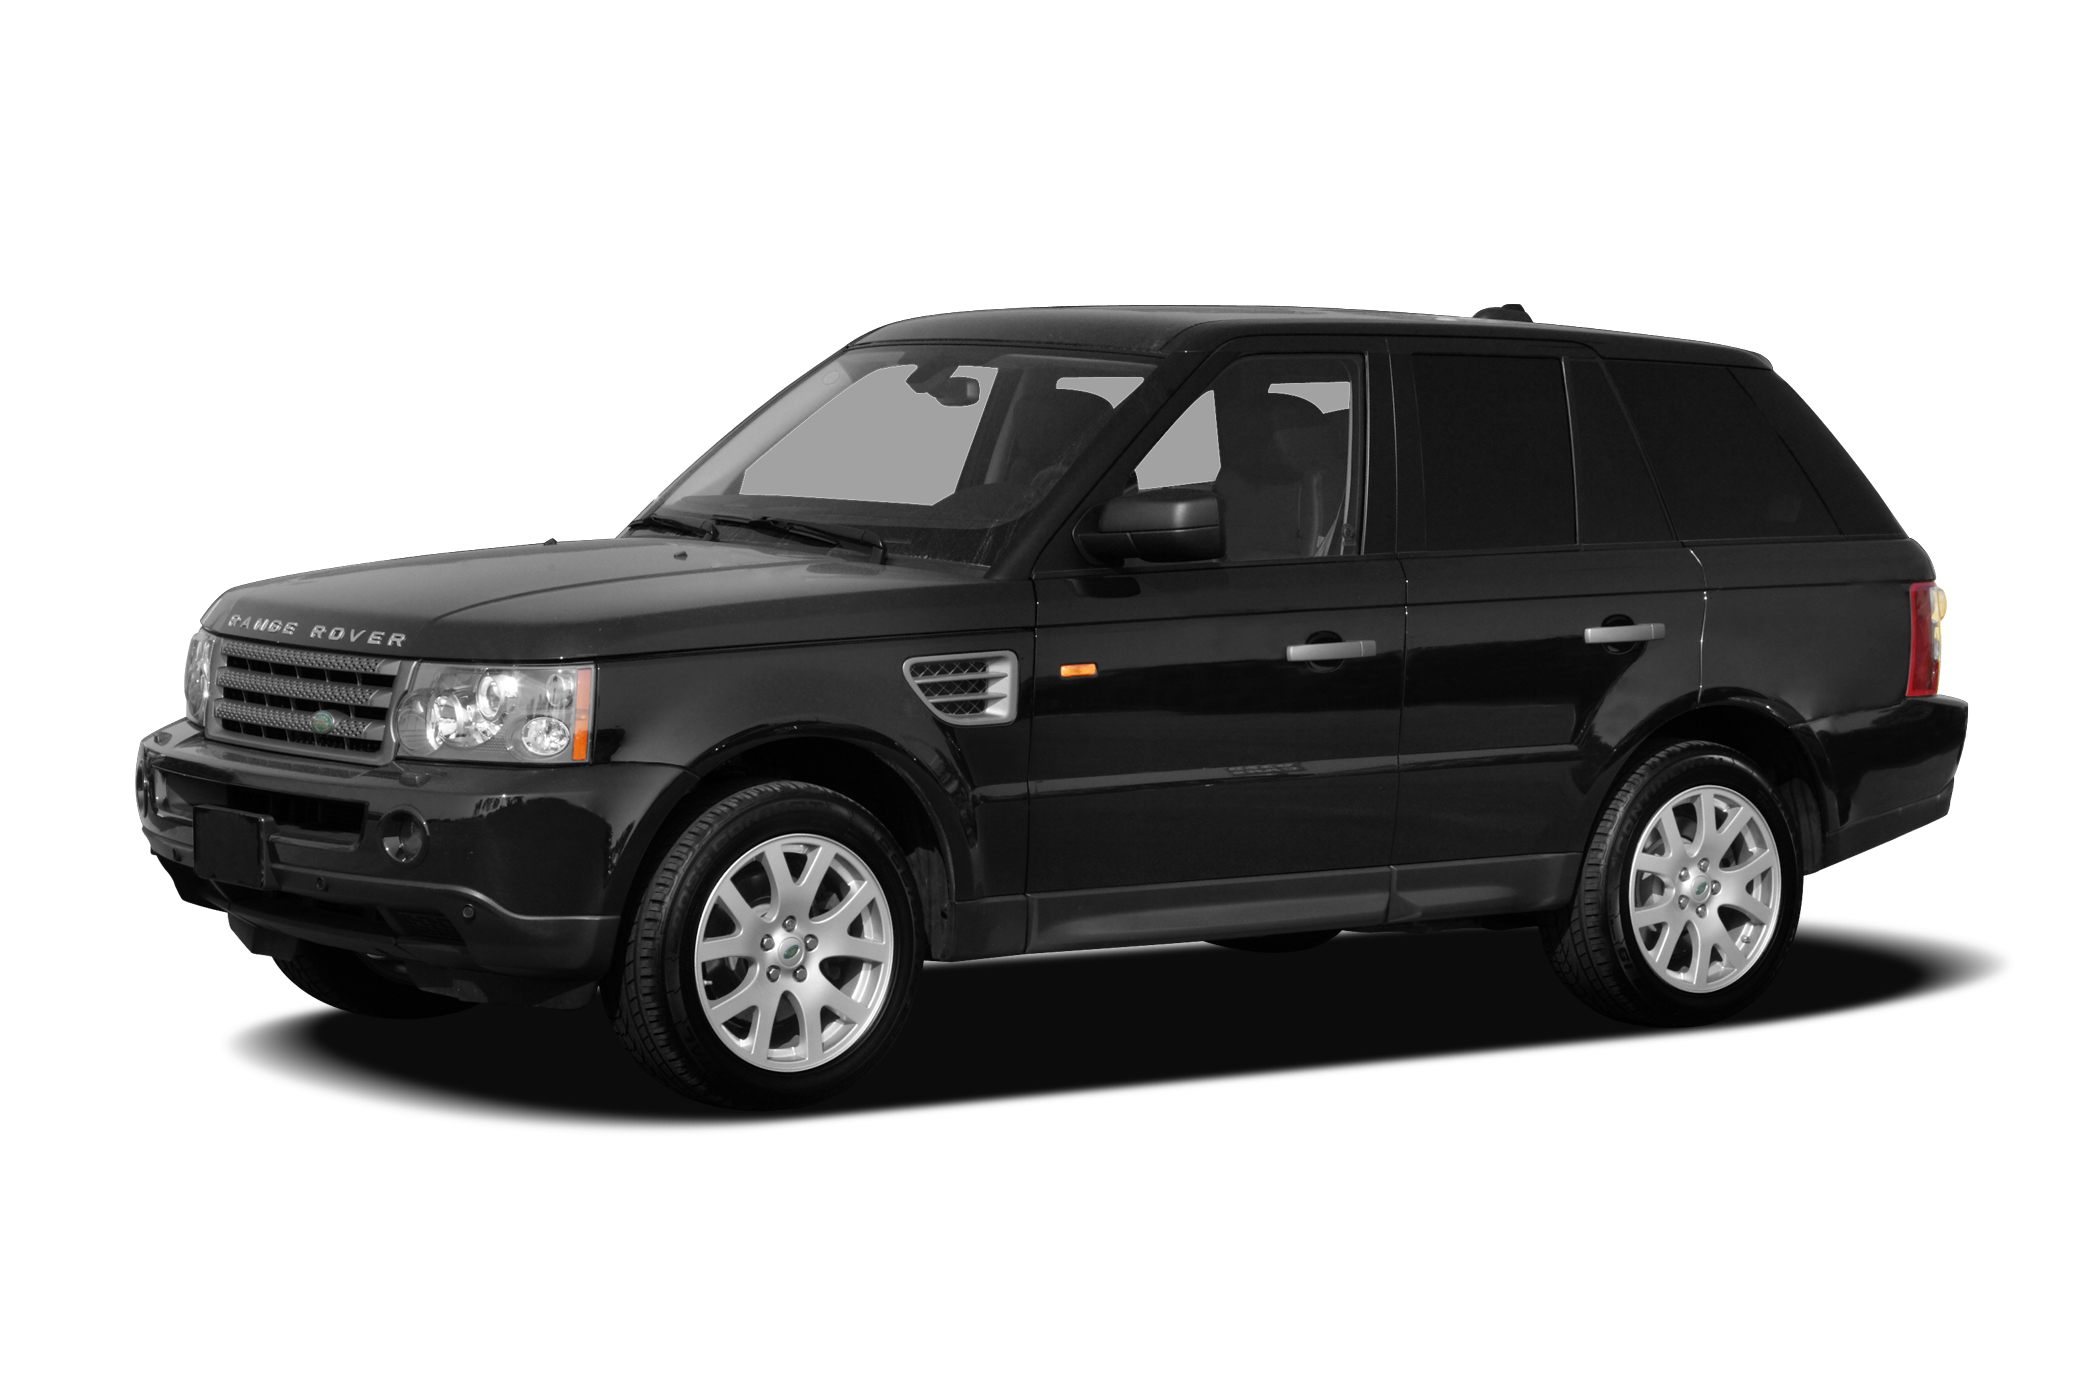 2007 Land Rover Range Rover HSE 4dr All wheel Drive Information